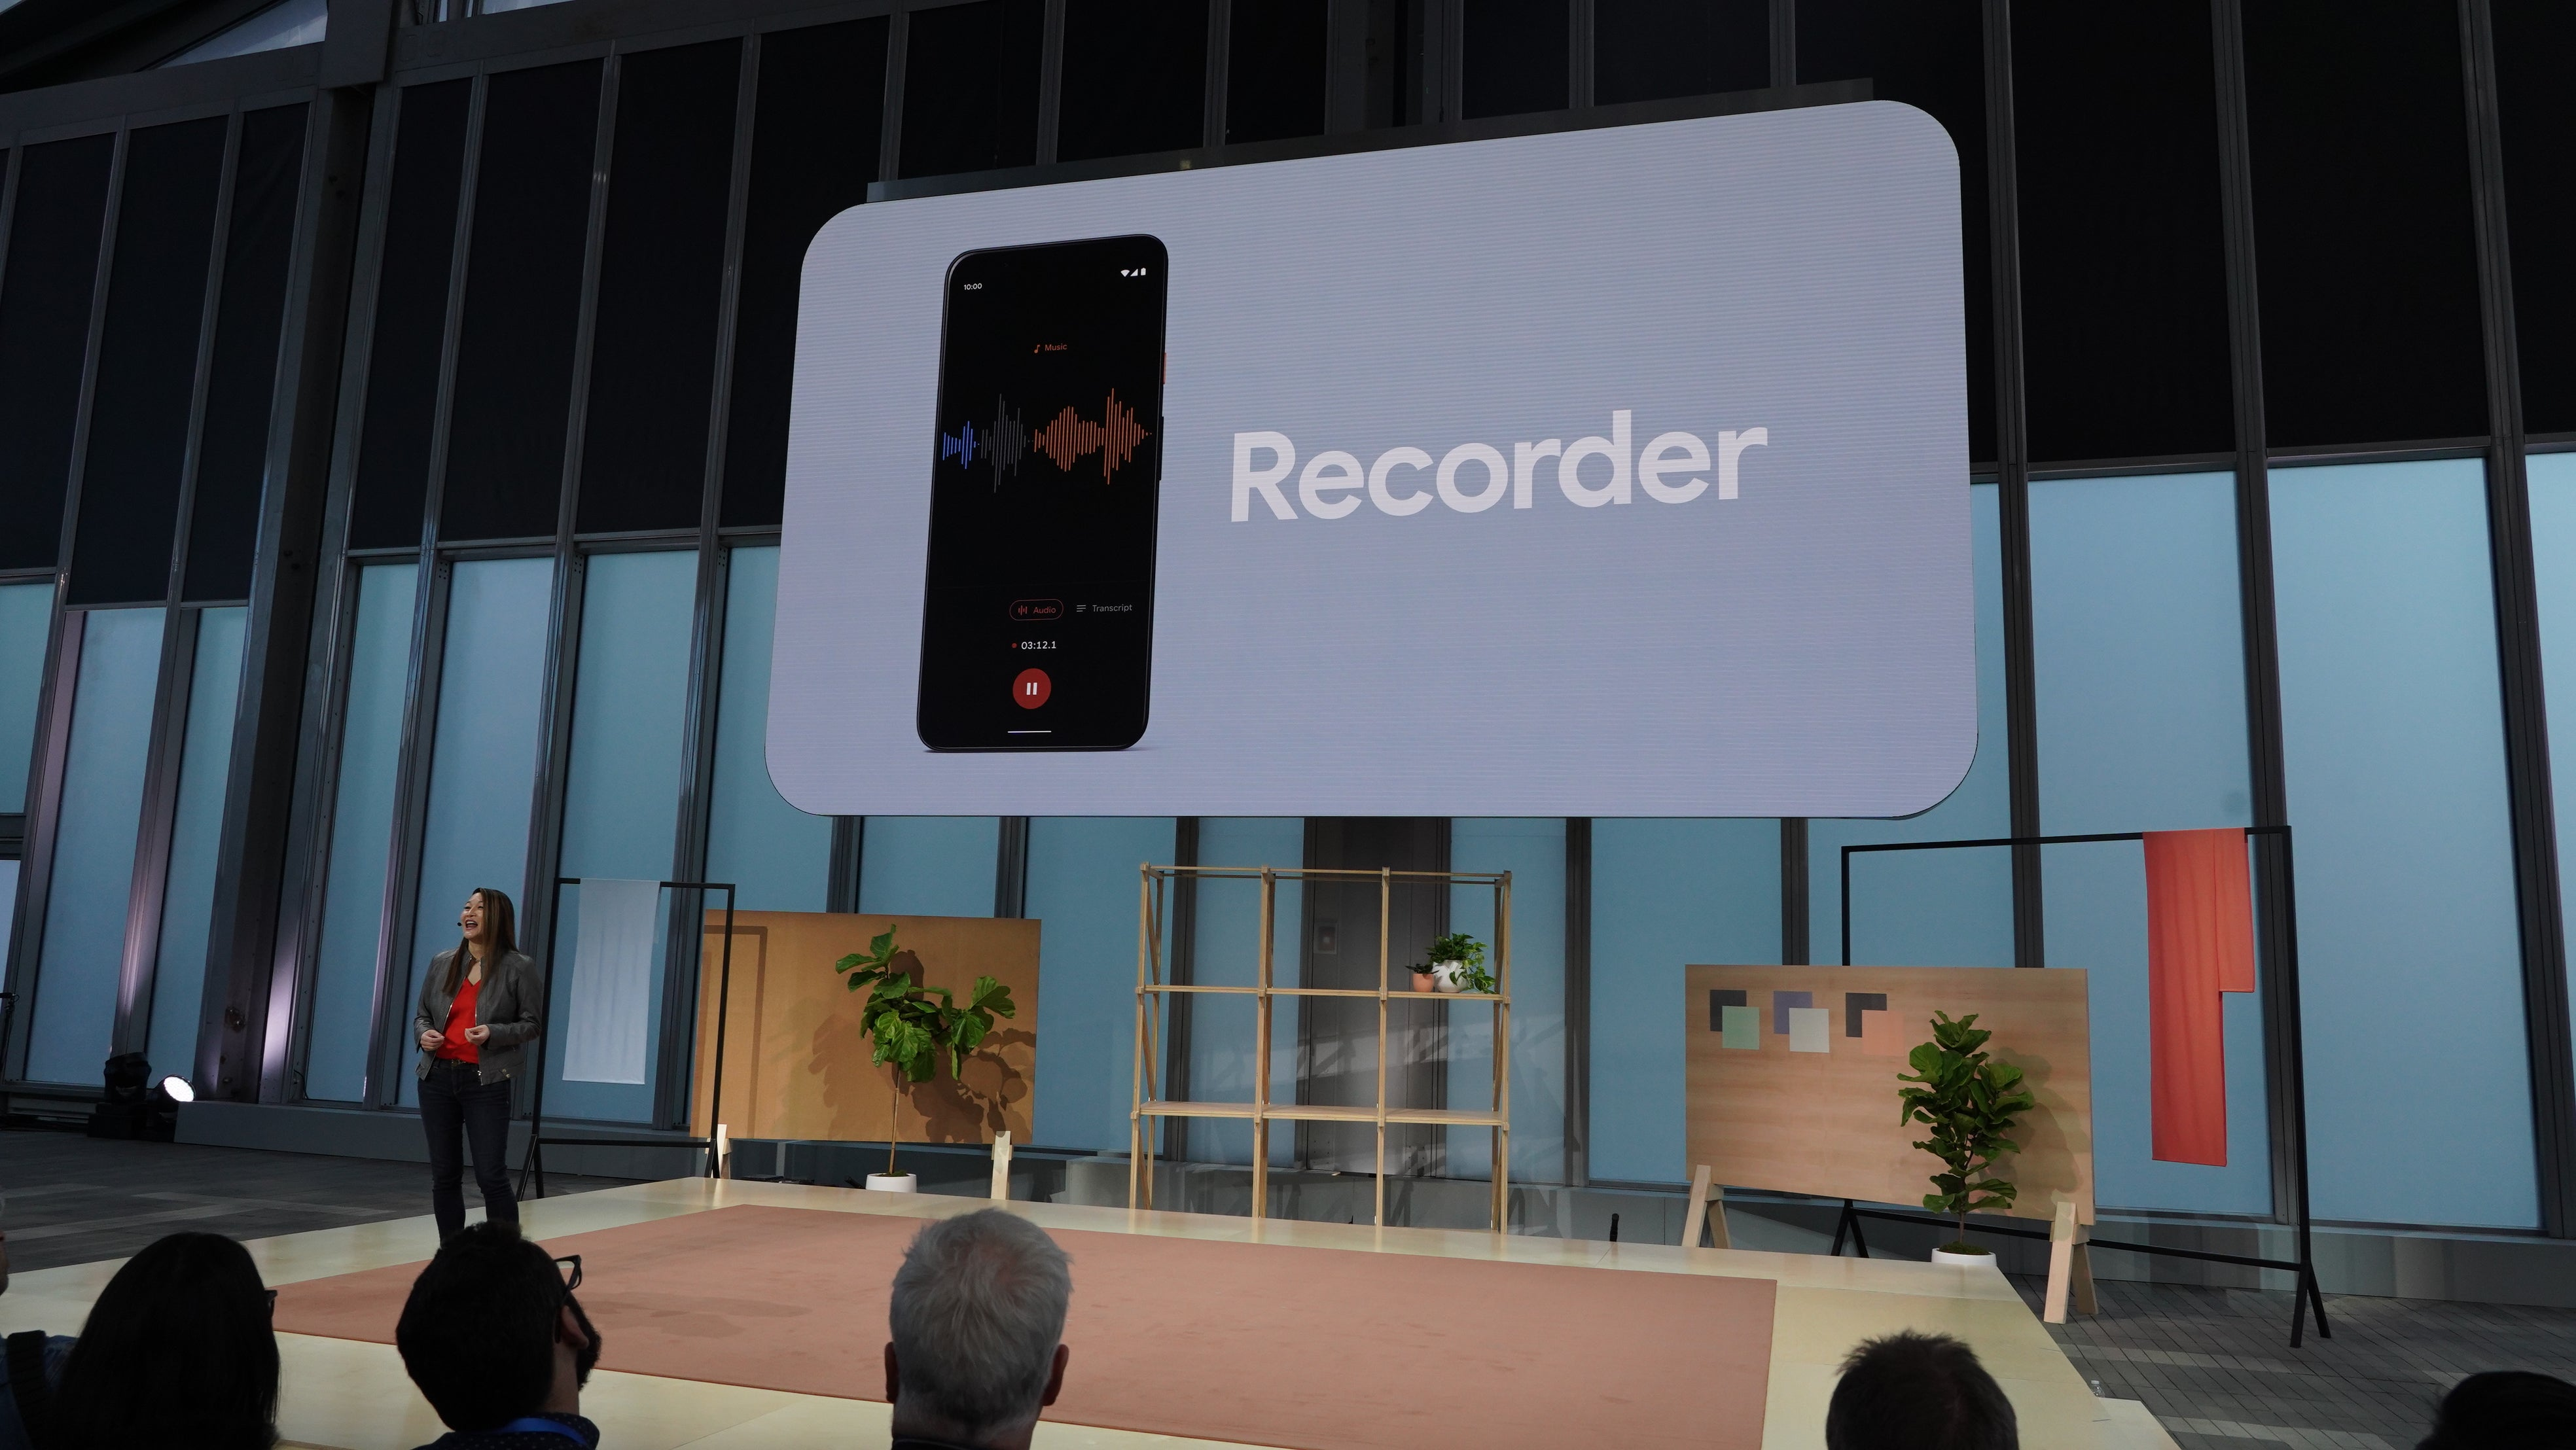 Google's New Recorder App Has An Unofficial Workaround, No Pixel Required